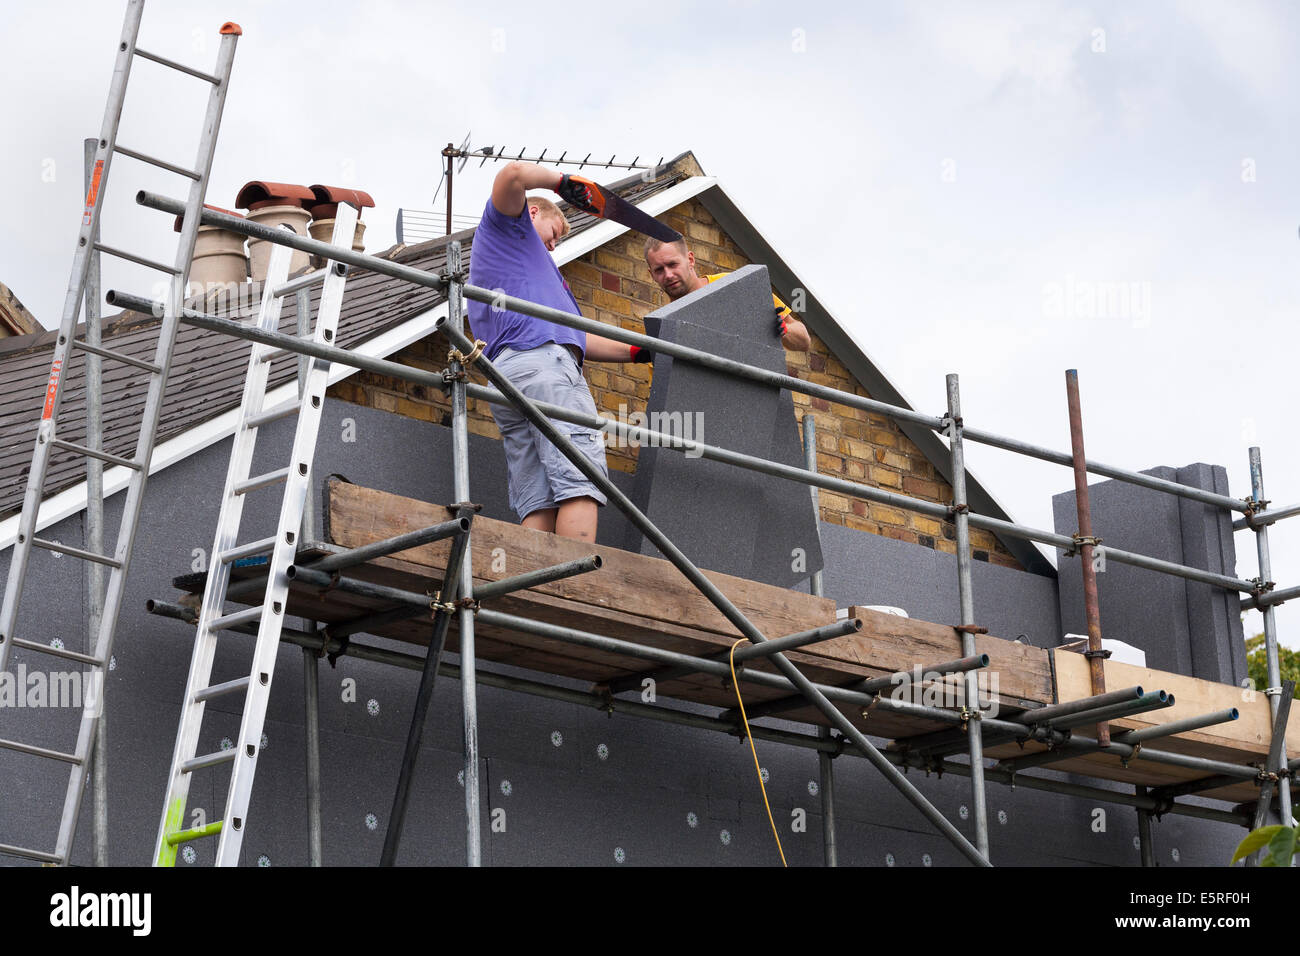 Builders attaching / fitting rigid foam wall insulation sheets / panels / boards to the gable end of Victorian terraced - Stock Image